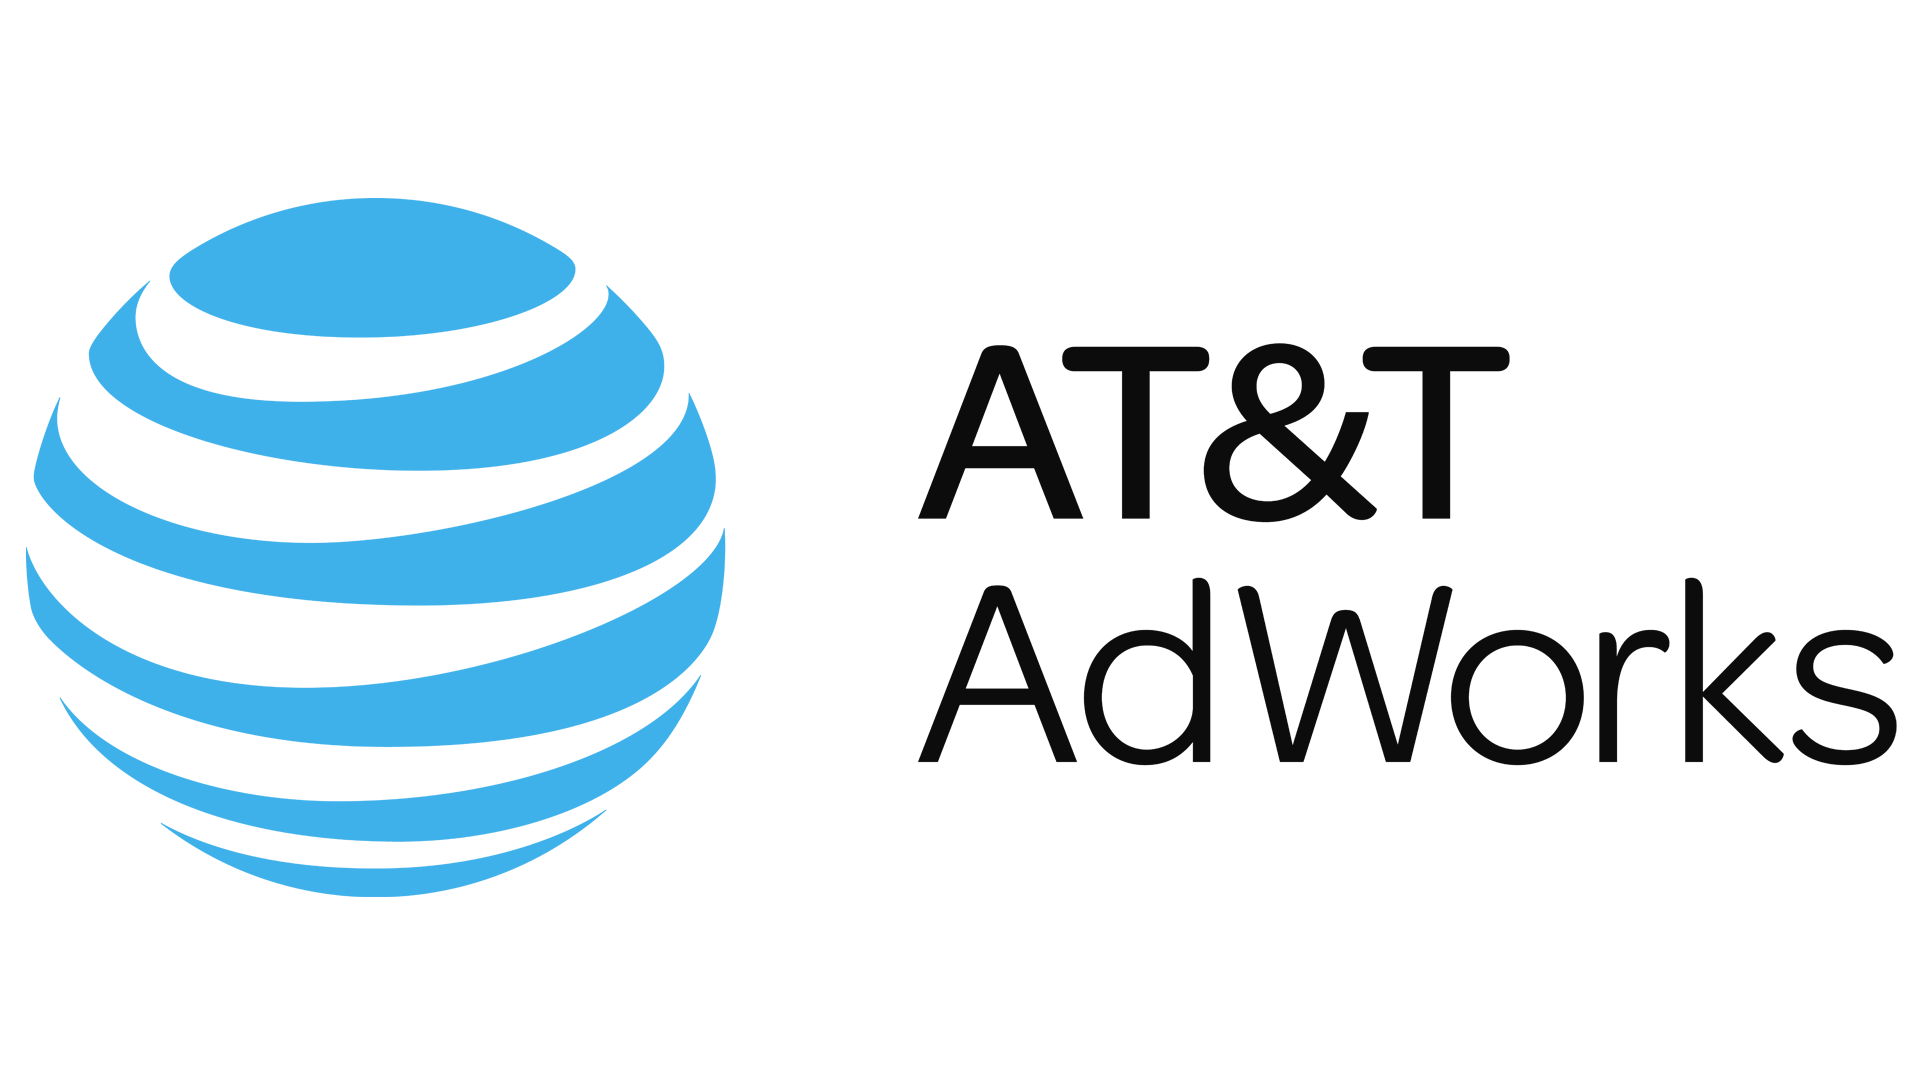 Meaning AT&T logo and symbol.